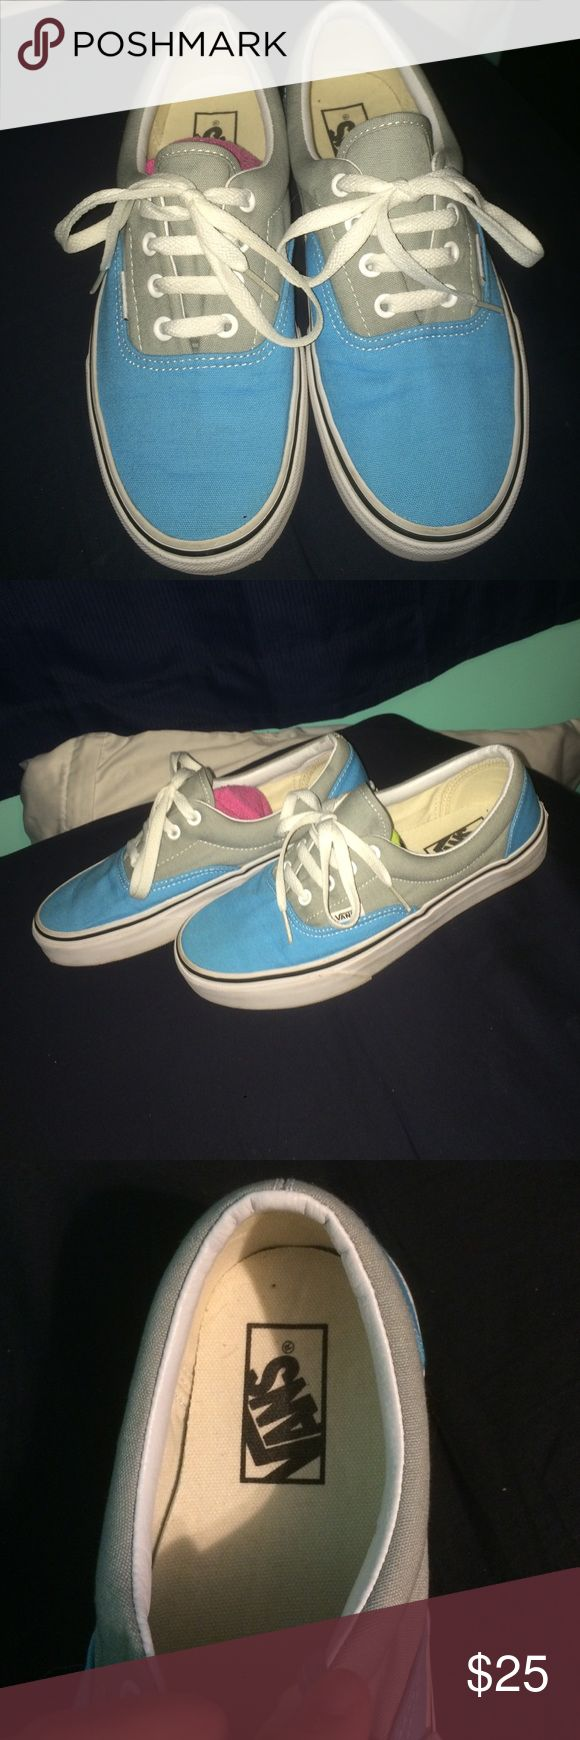 Worn once blue and gray vans 7.5 light gray and light blue Vans Shoes Sneakers